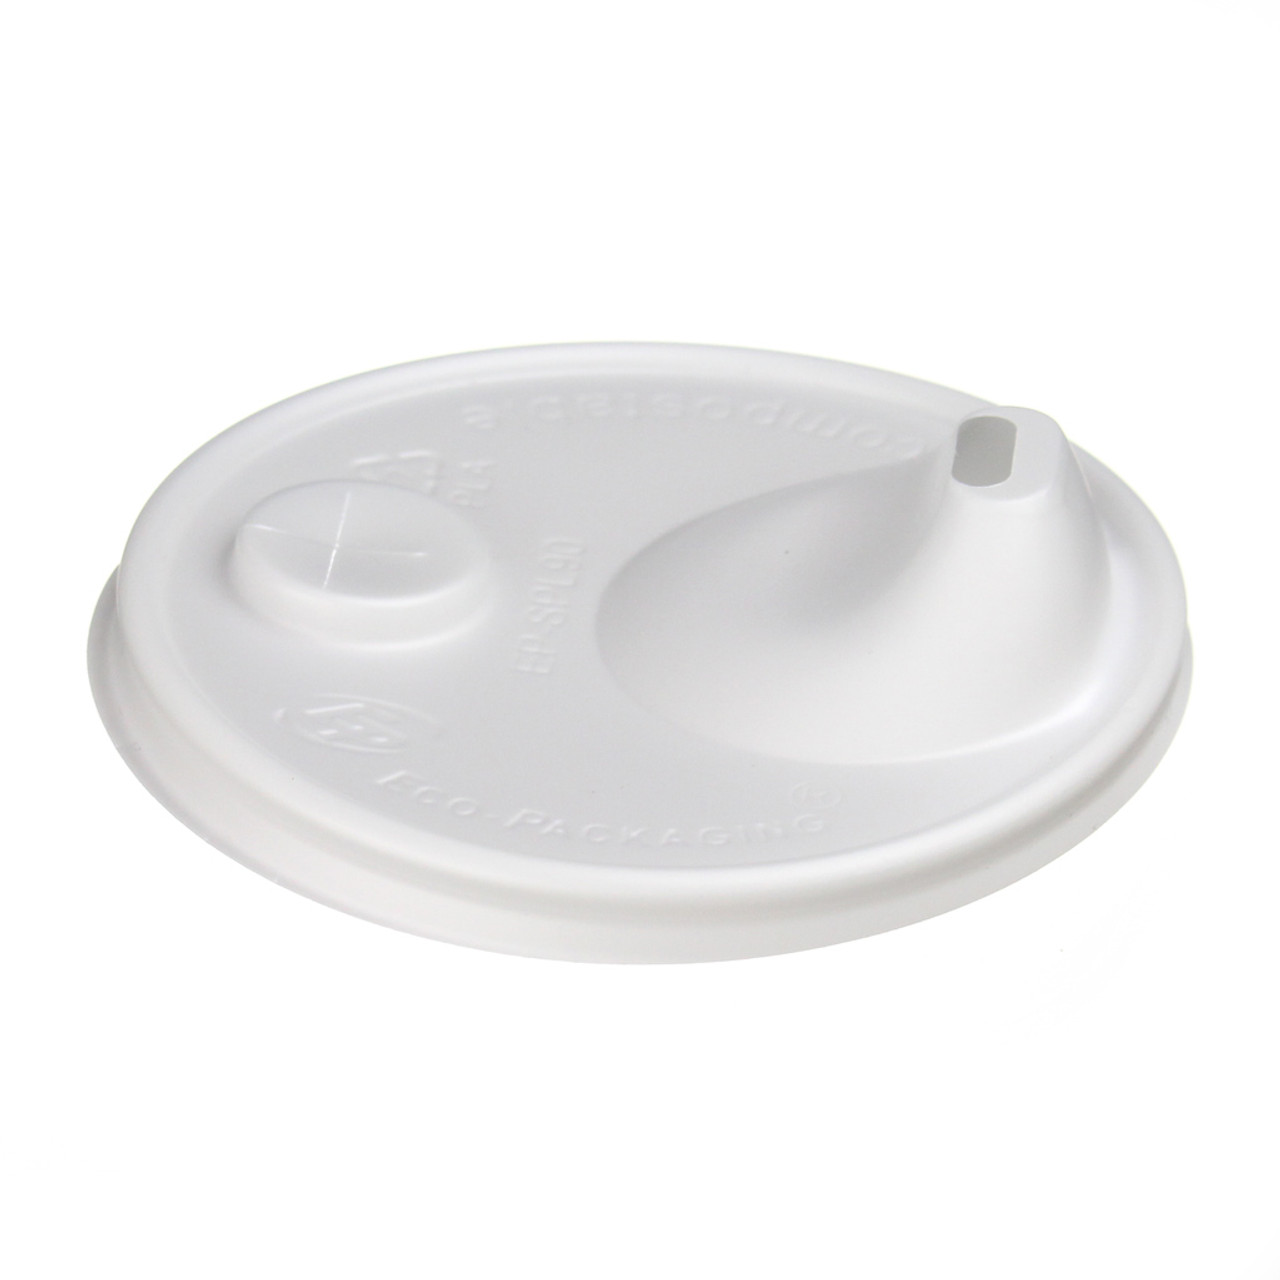 Compostable Sip and Straw Lid